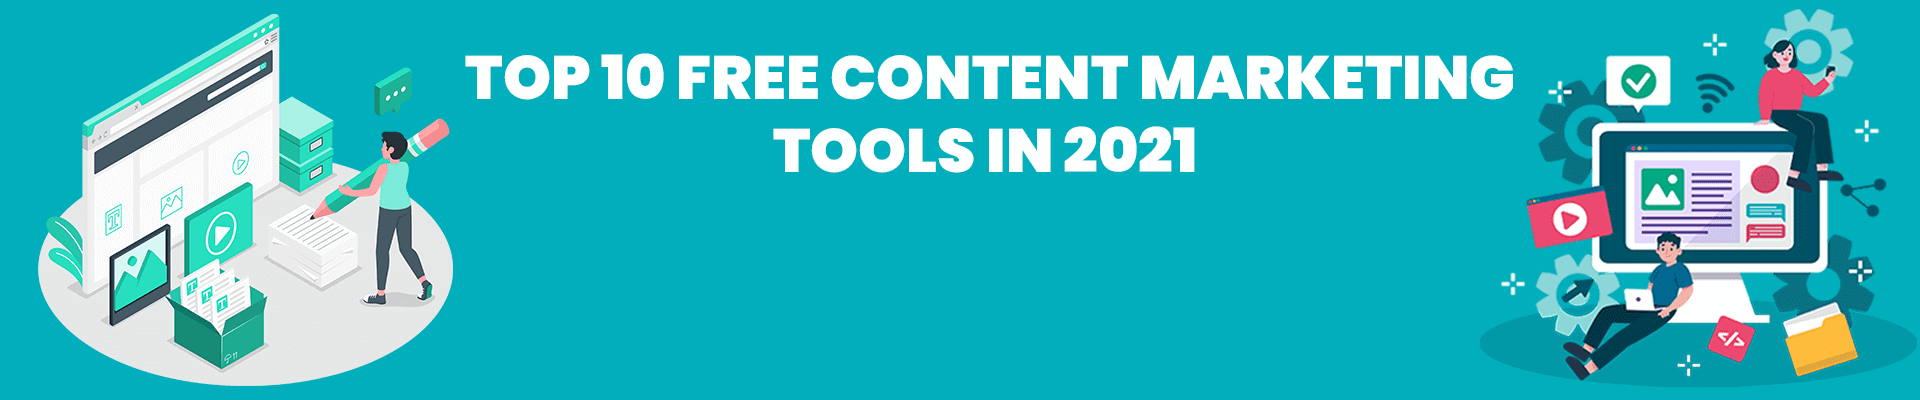 Top 10 Free Content Marketing Tools for Newbies [2021]